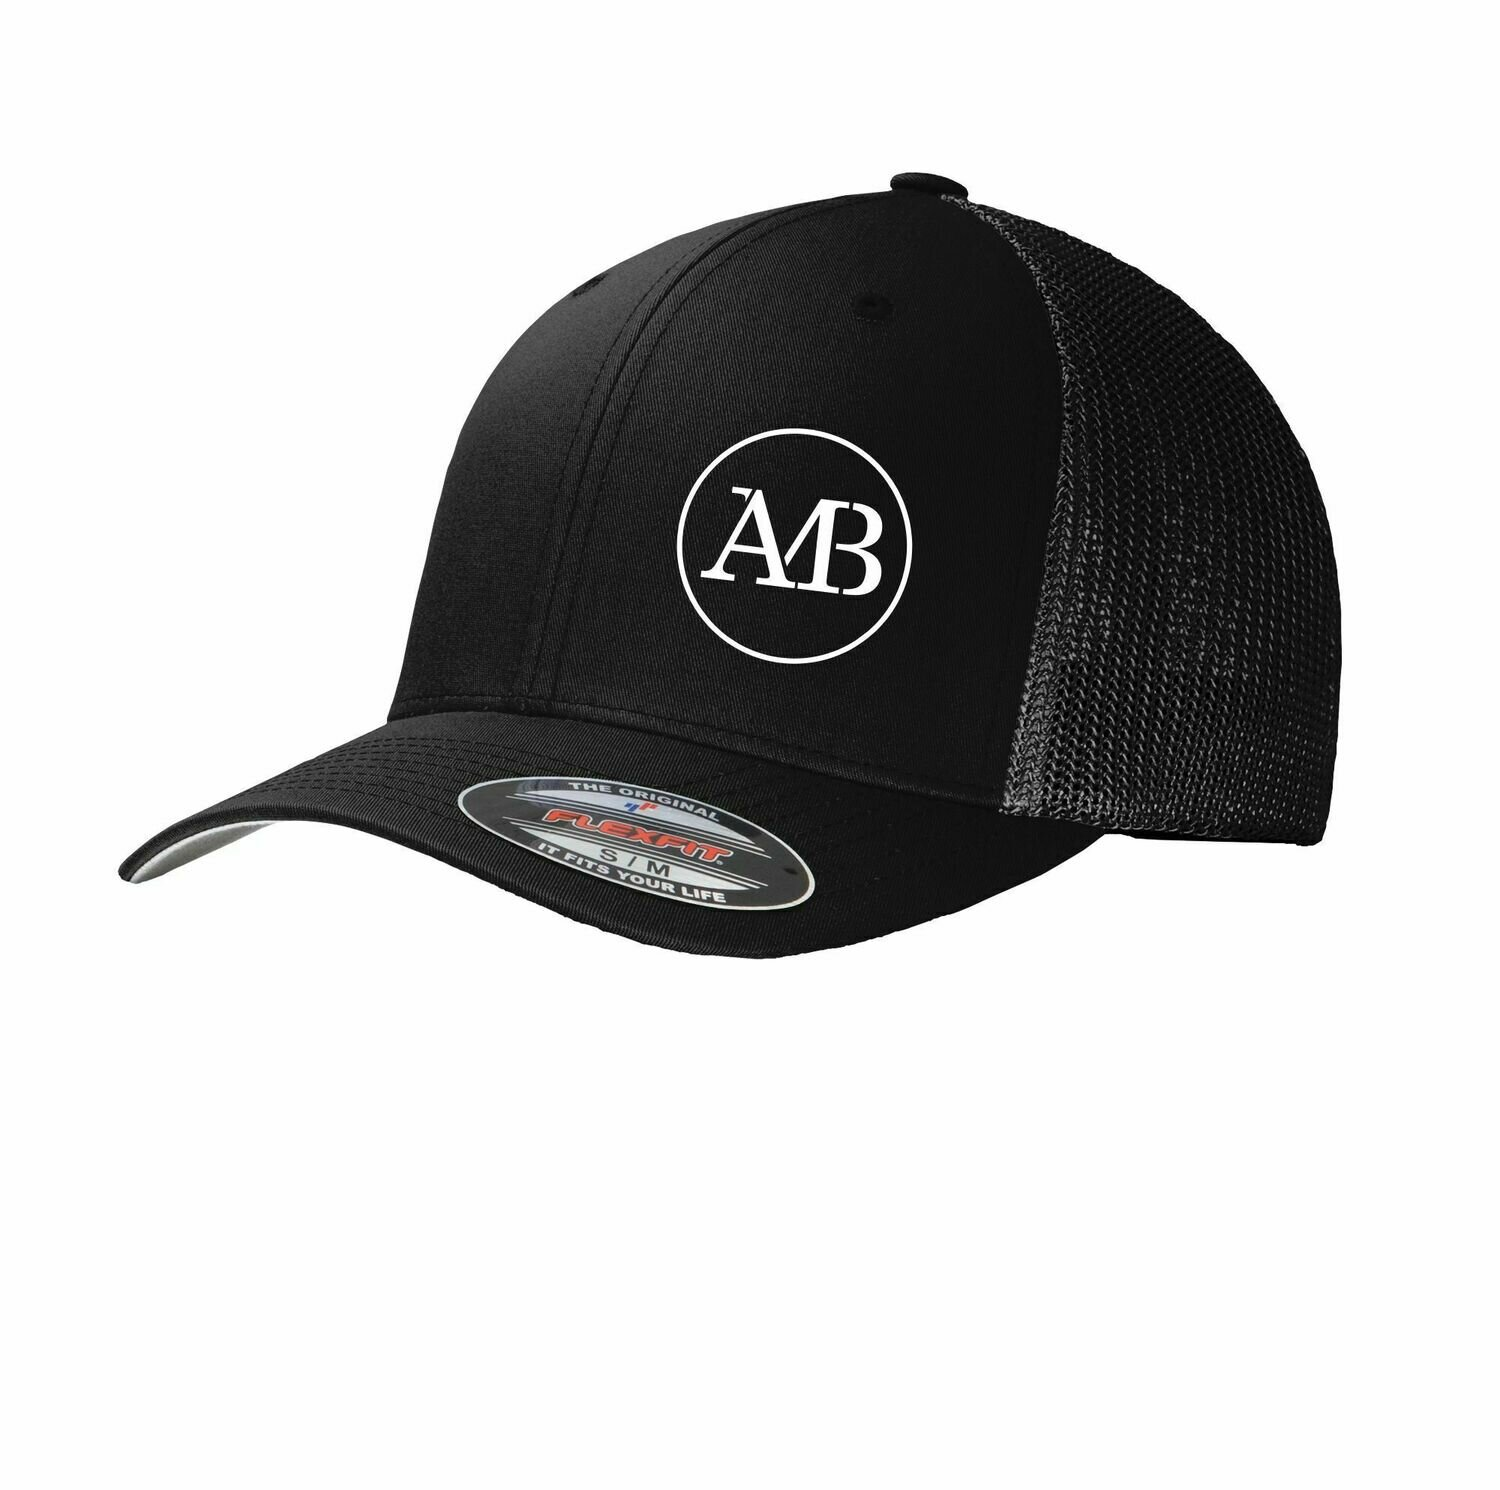 AMB Flexfit Embroidered Cap